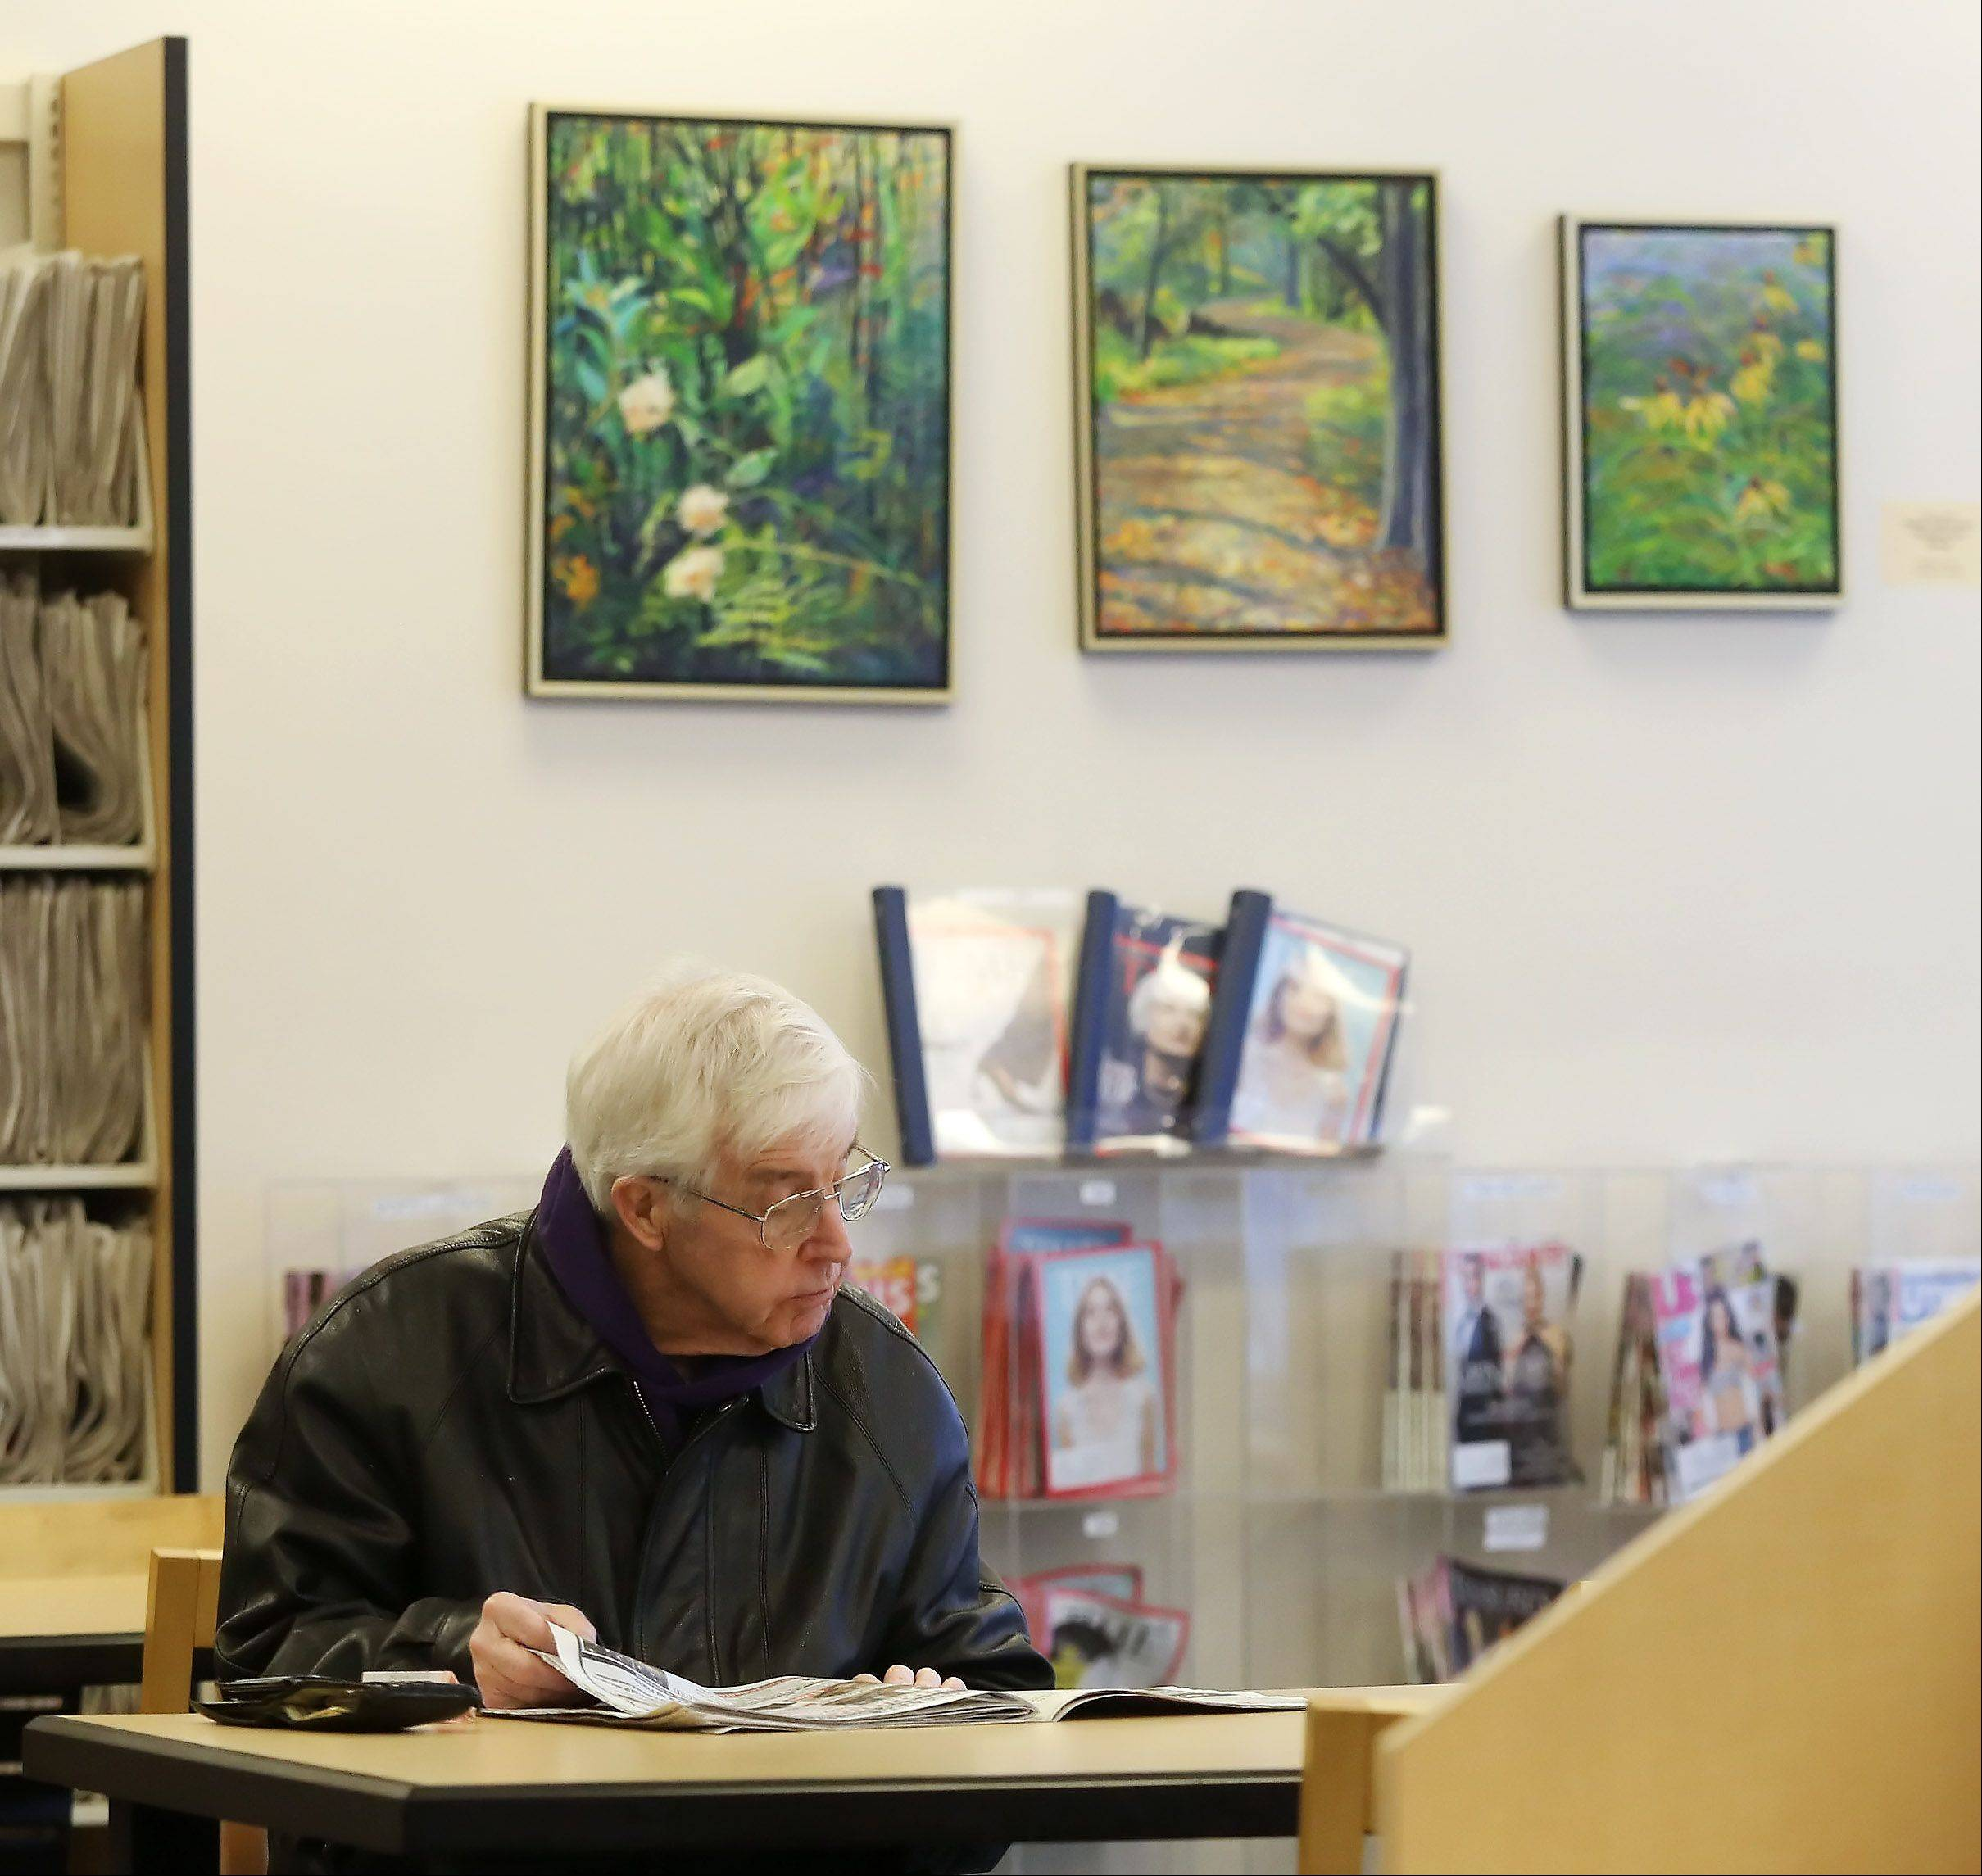 Gurnee library planning to expand public art collection